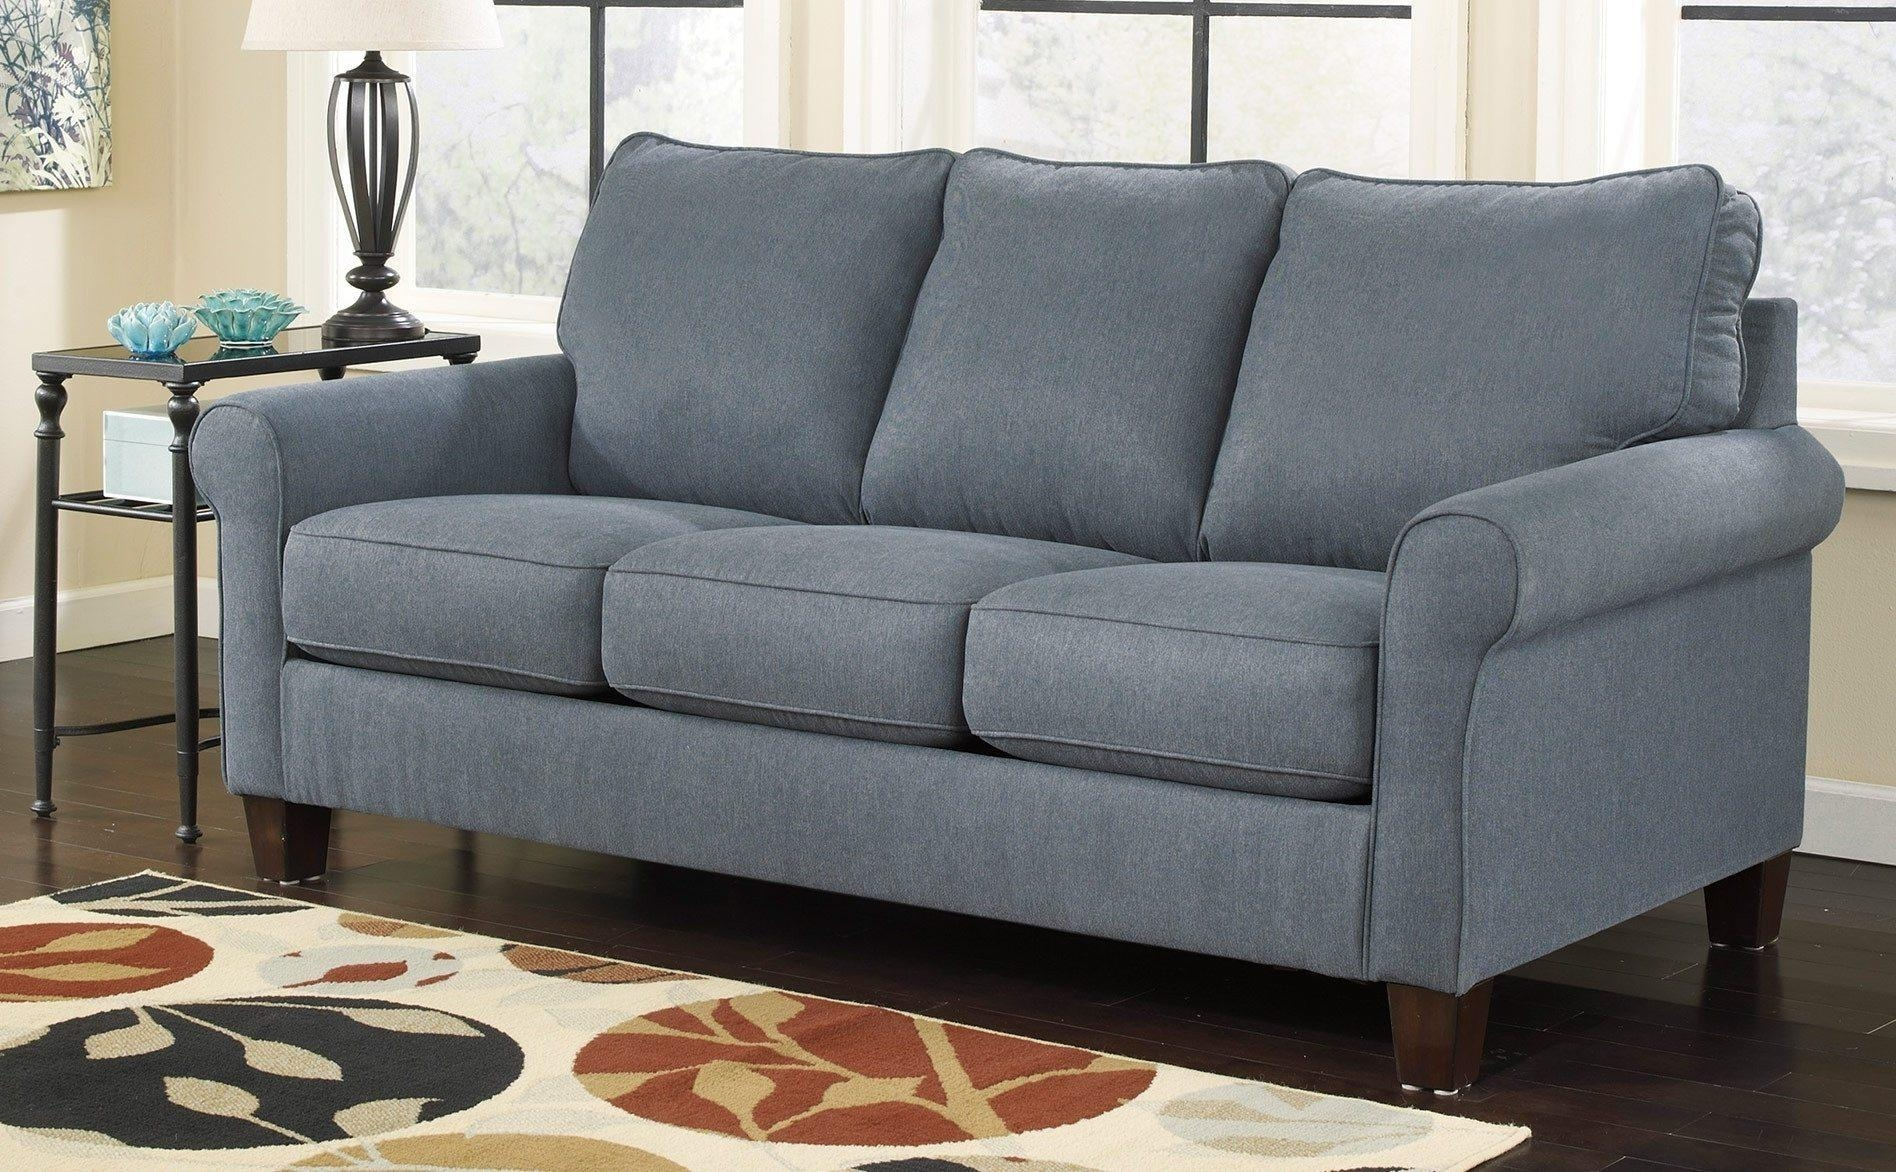 Sealy Sectional Sofa Bed – Page 3 – Webforfreaks Inside Sealy Leather Sofas (View 12 of 20)